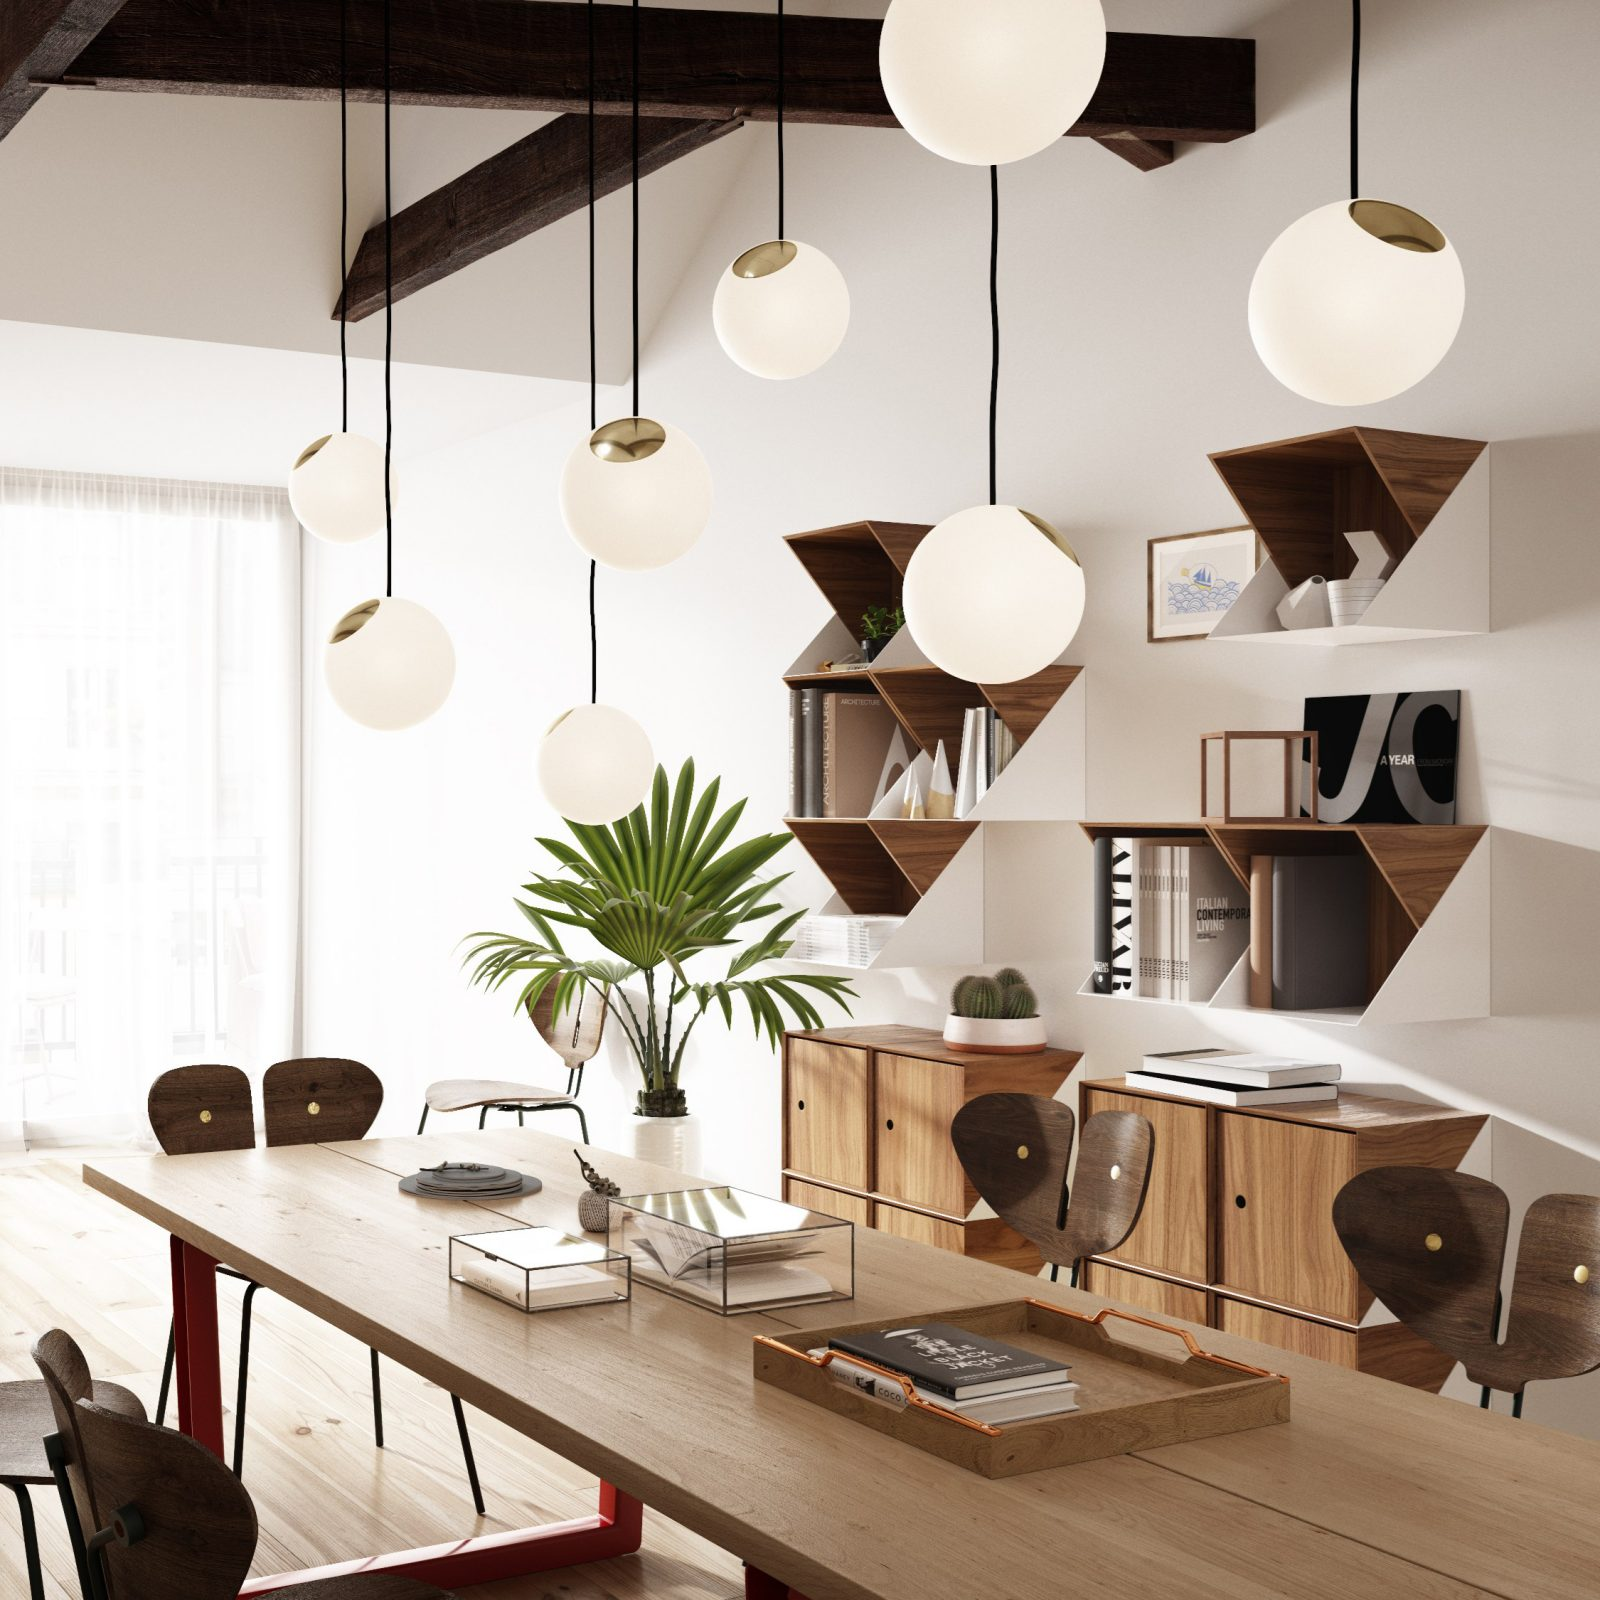 BRIGHT-SPOT-Nordic-Tales-238176-rel99ef5f32 & Looking for a Nordic Tales Bright Spot Lamp? Shop online at The ...